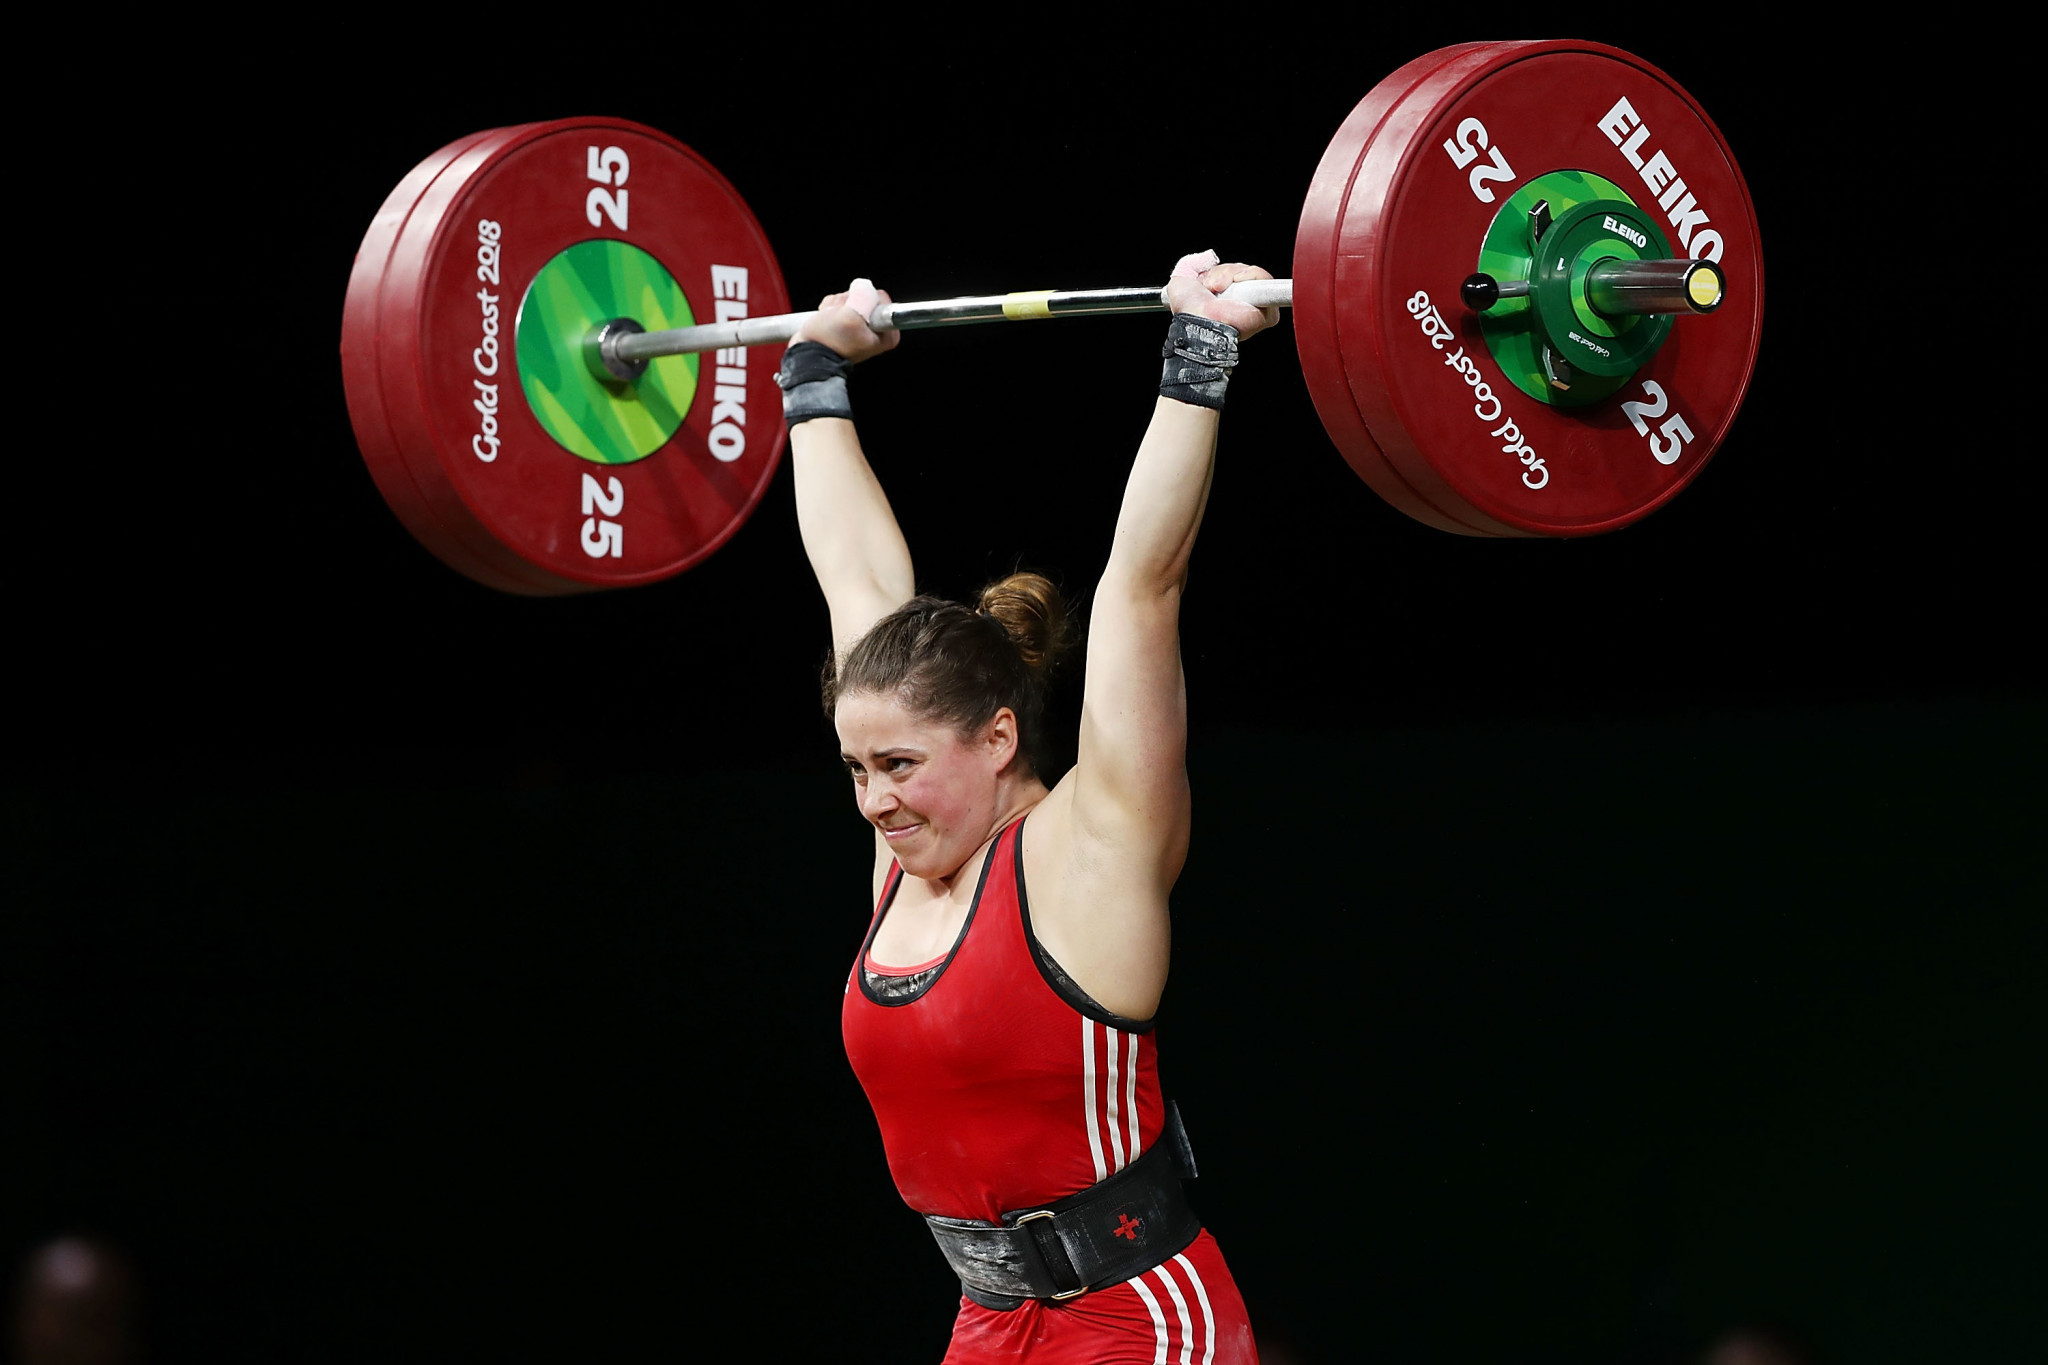 Maude Charron of Canada broke three Pan American Championships records on her way to winning the women's 64kg category in the Dominican Republic ©Getty Images